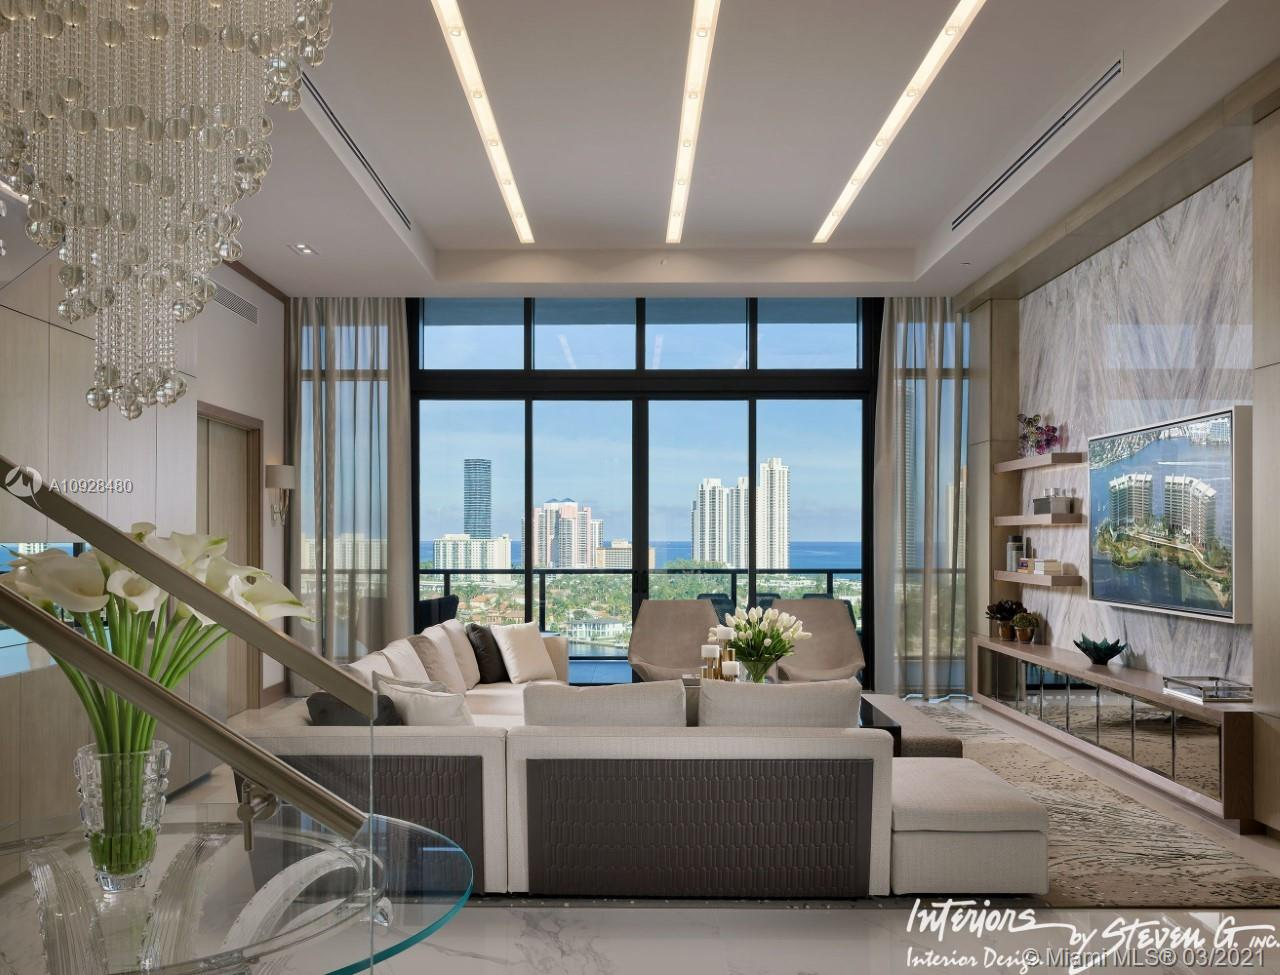 DECORATOR READY . Beautiful PH´s in the most exclusive islands in Aventura. We have the option to join the two Penthouses 1506 and 1507 and make a unique luxury apartament. Steven G made a built up proposal in which the additional cost will be the Buyers responsability.